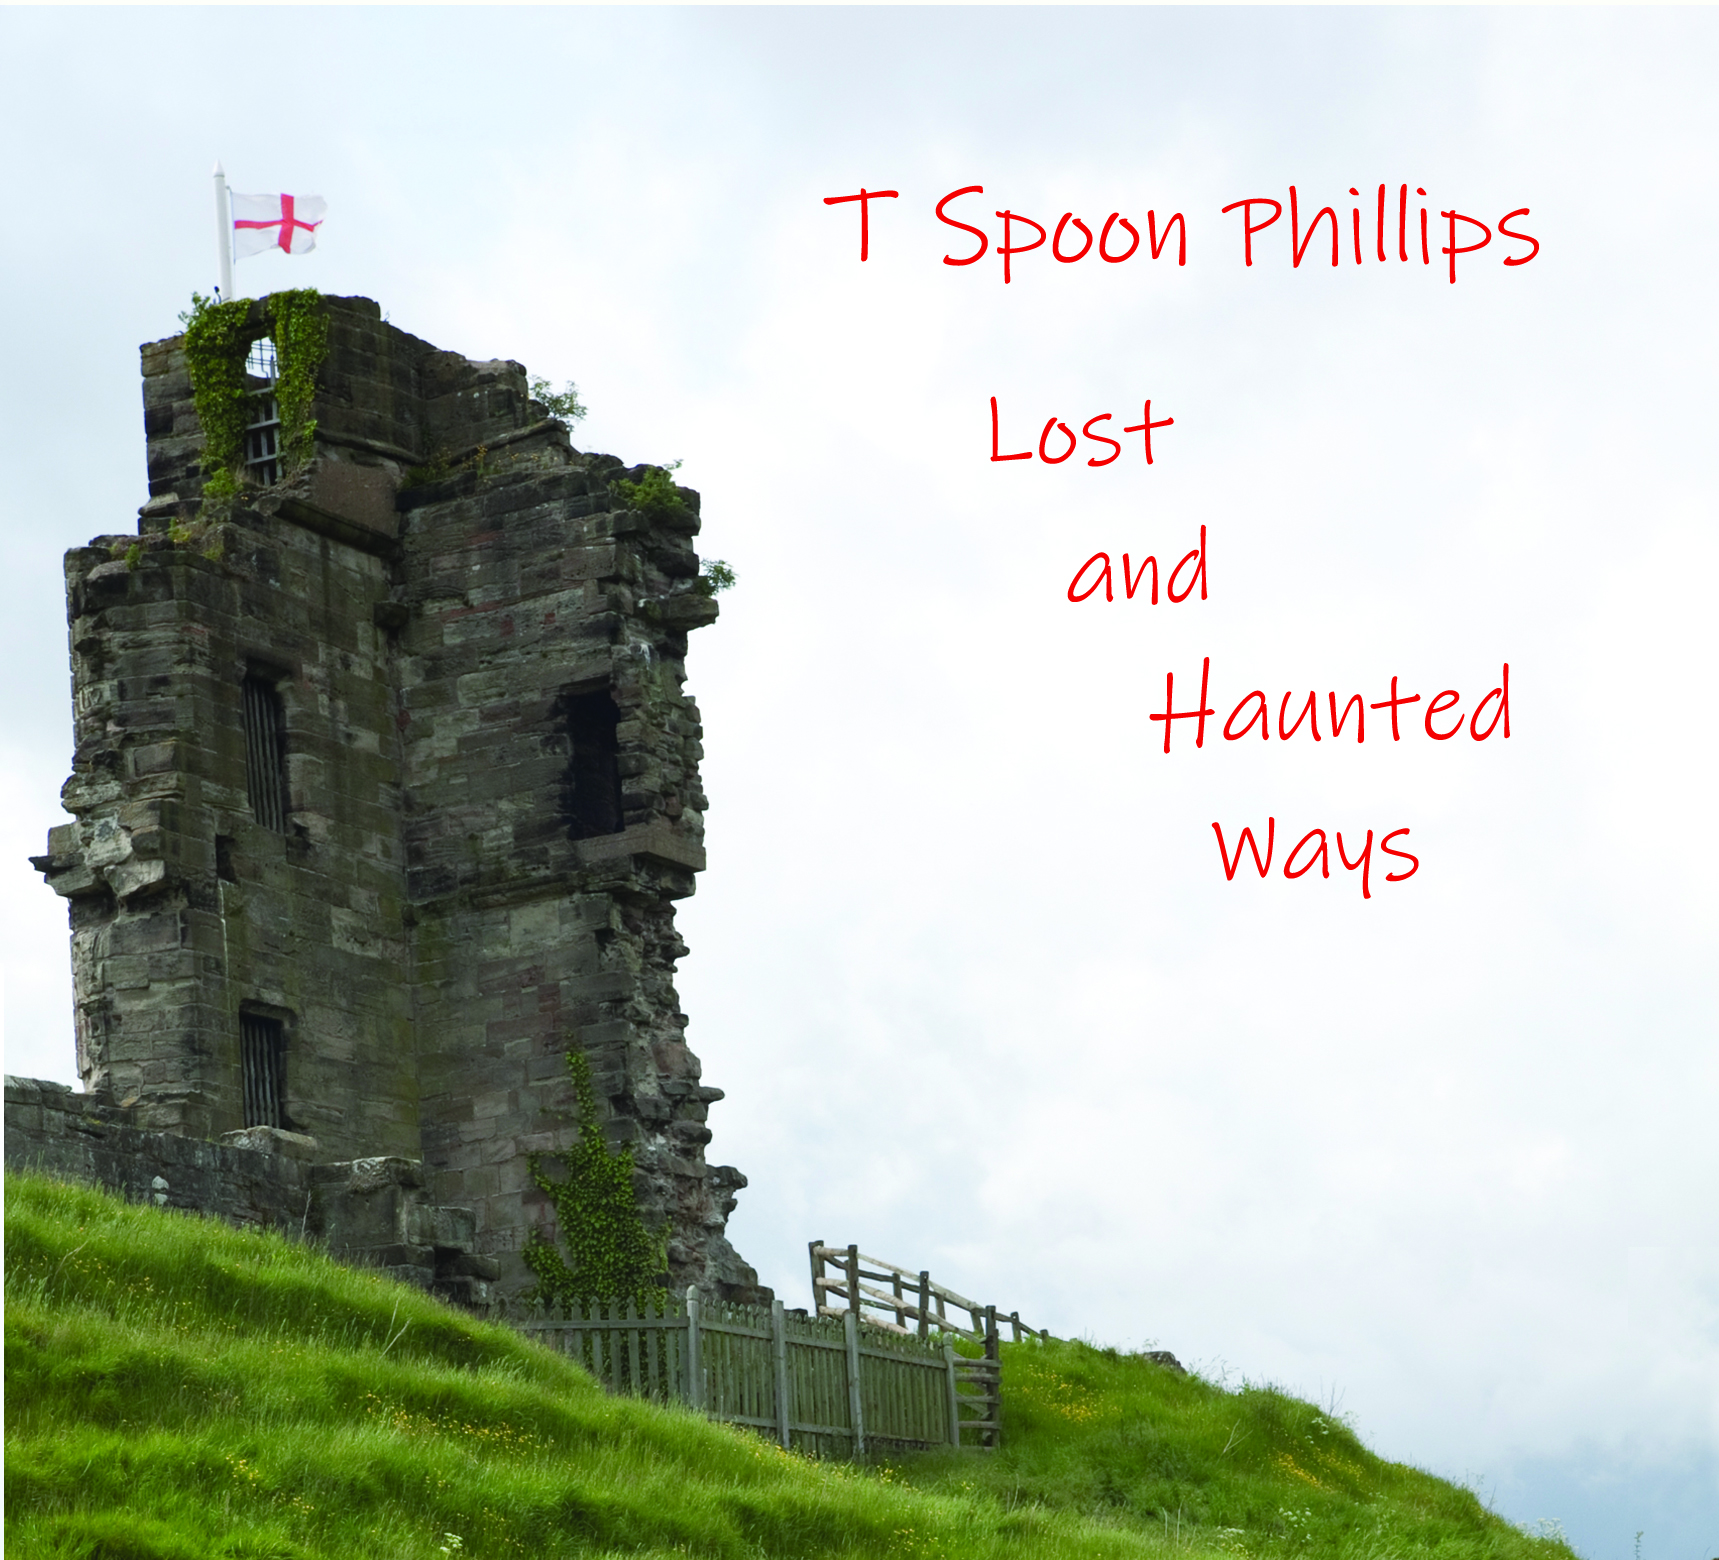 T Spoon Phillips - Album Cover Lost and Haunted Ways